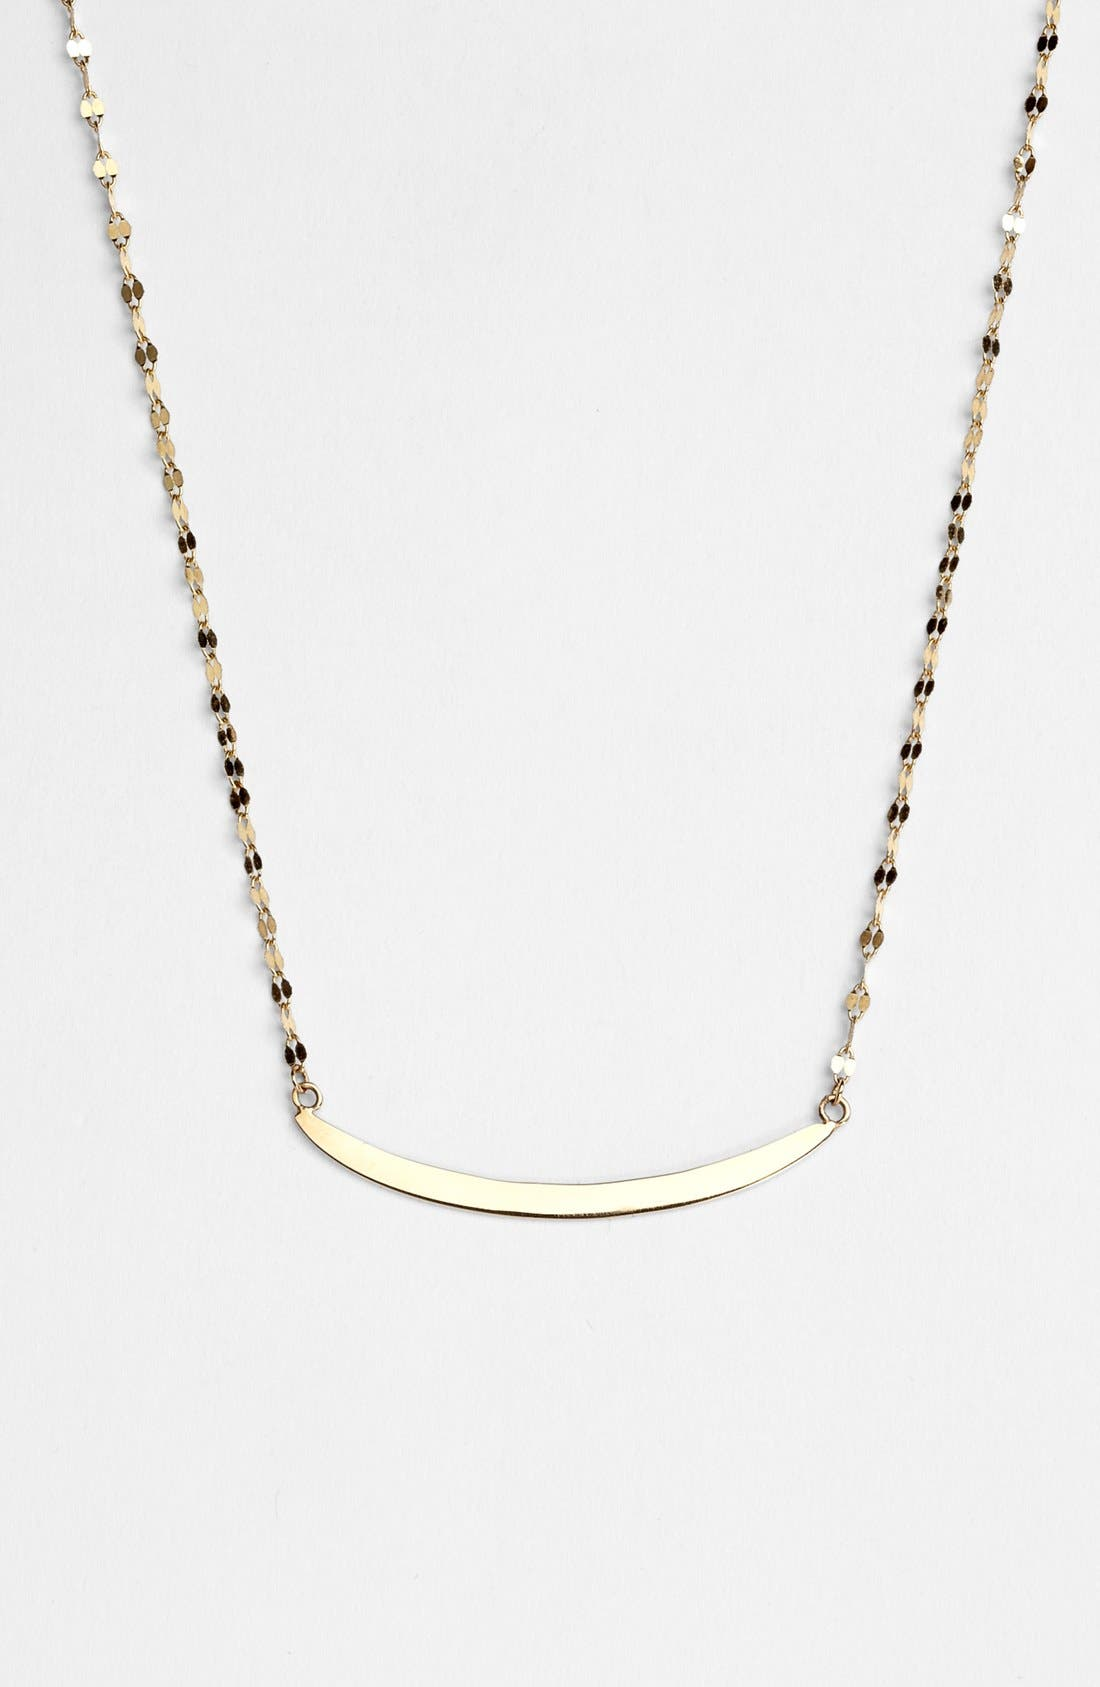 Alternate Image 1 Selected - Lana Jewelry 'Curve' Necklace